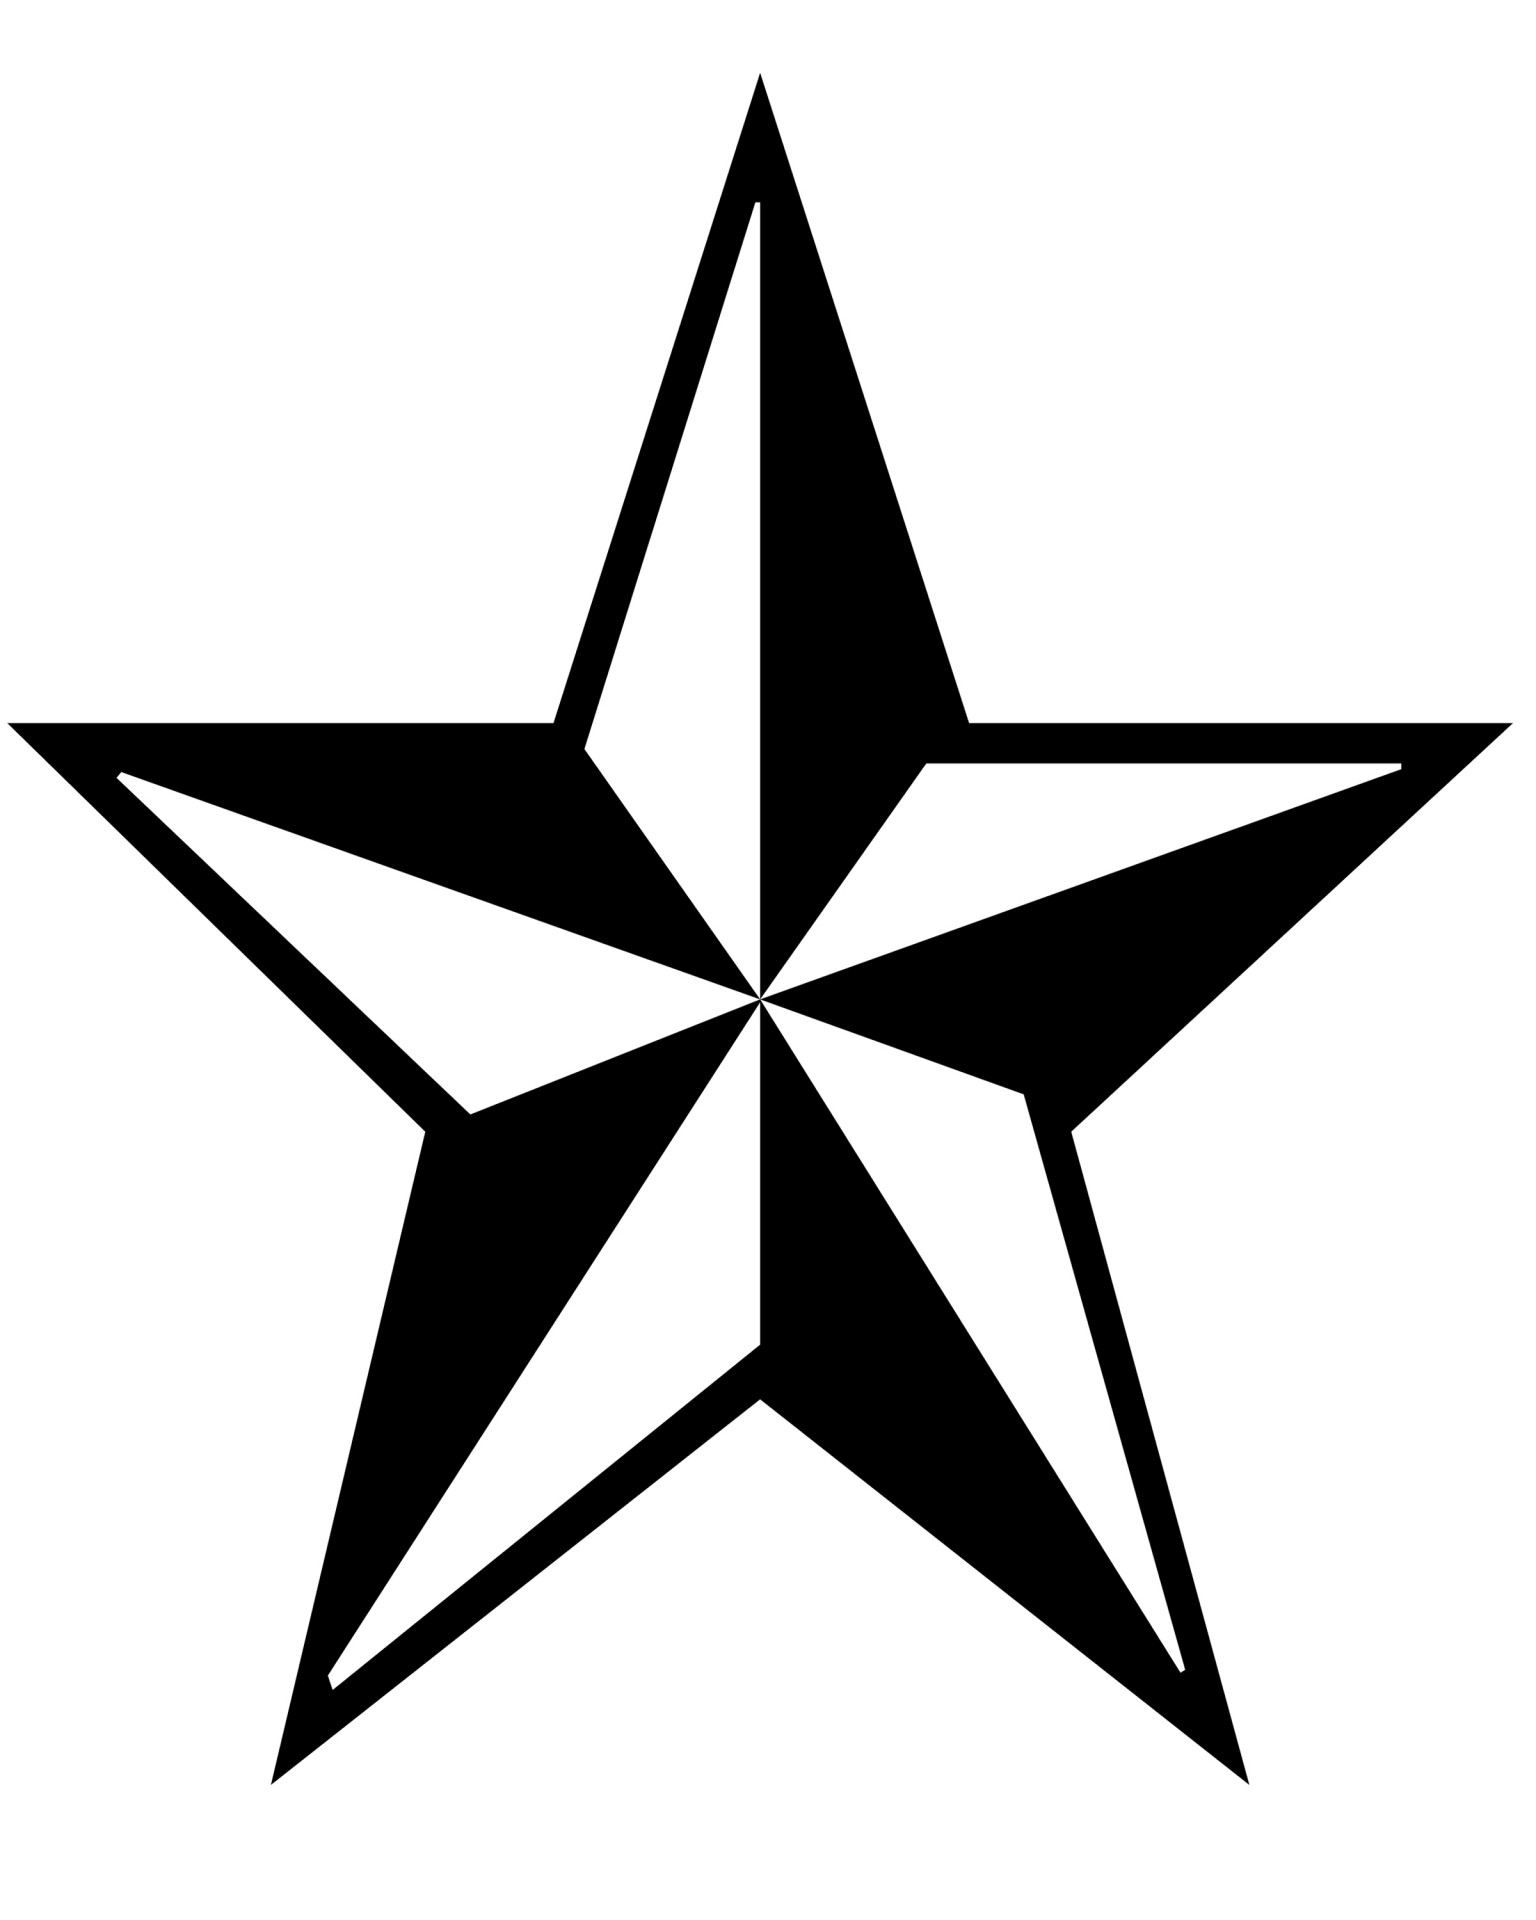 Google images star clipart picture library download Star Clip Art Free Stock Photo - Public Domain Pictures picture library download